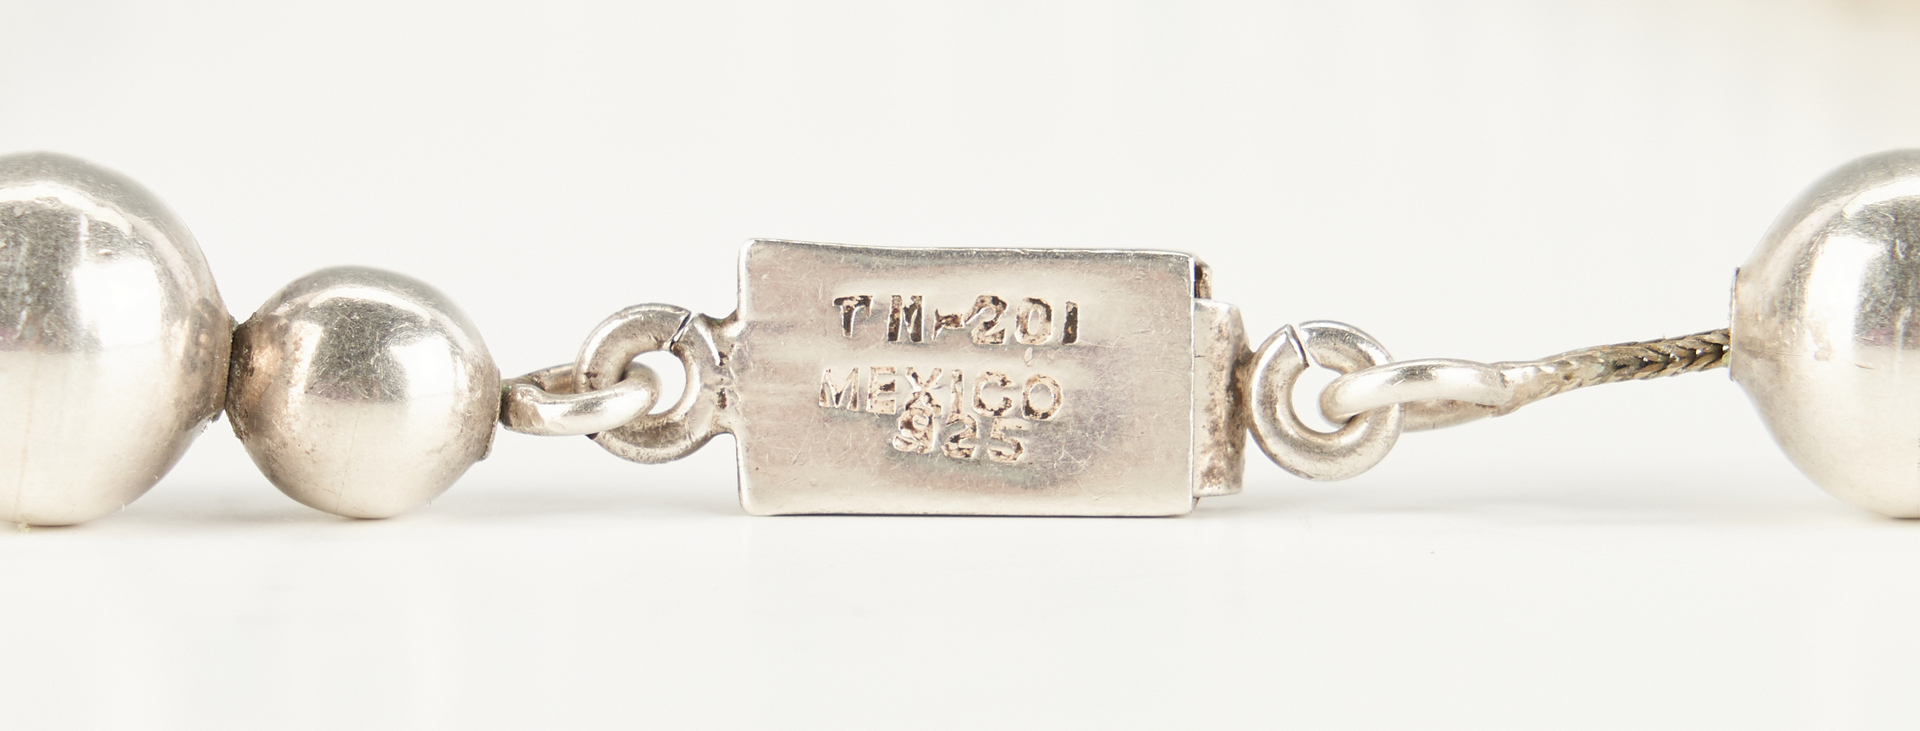 Lot 944: Group of 10 Mexican Sterling Silver Jewelry Items